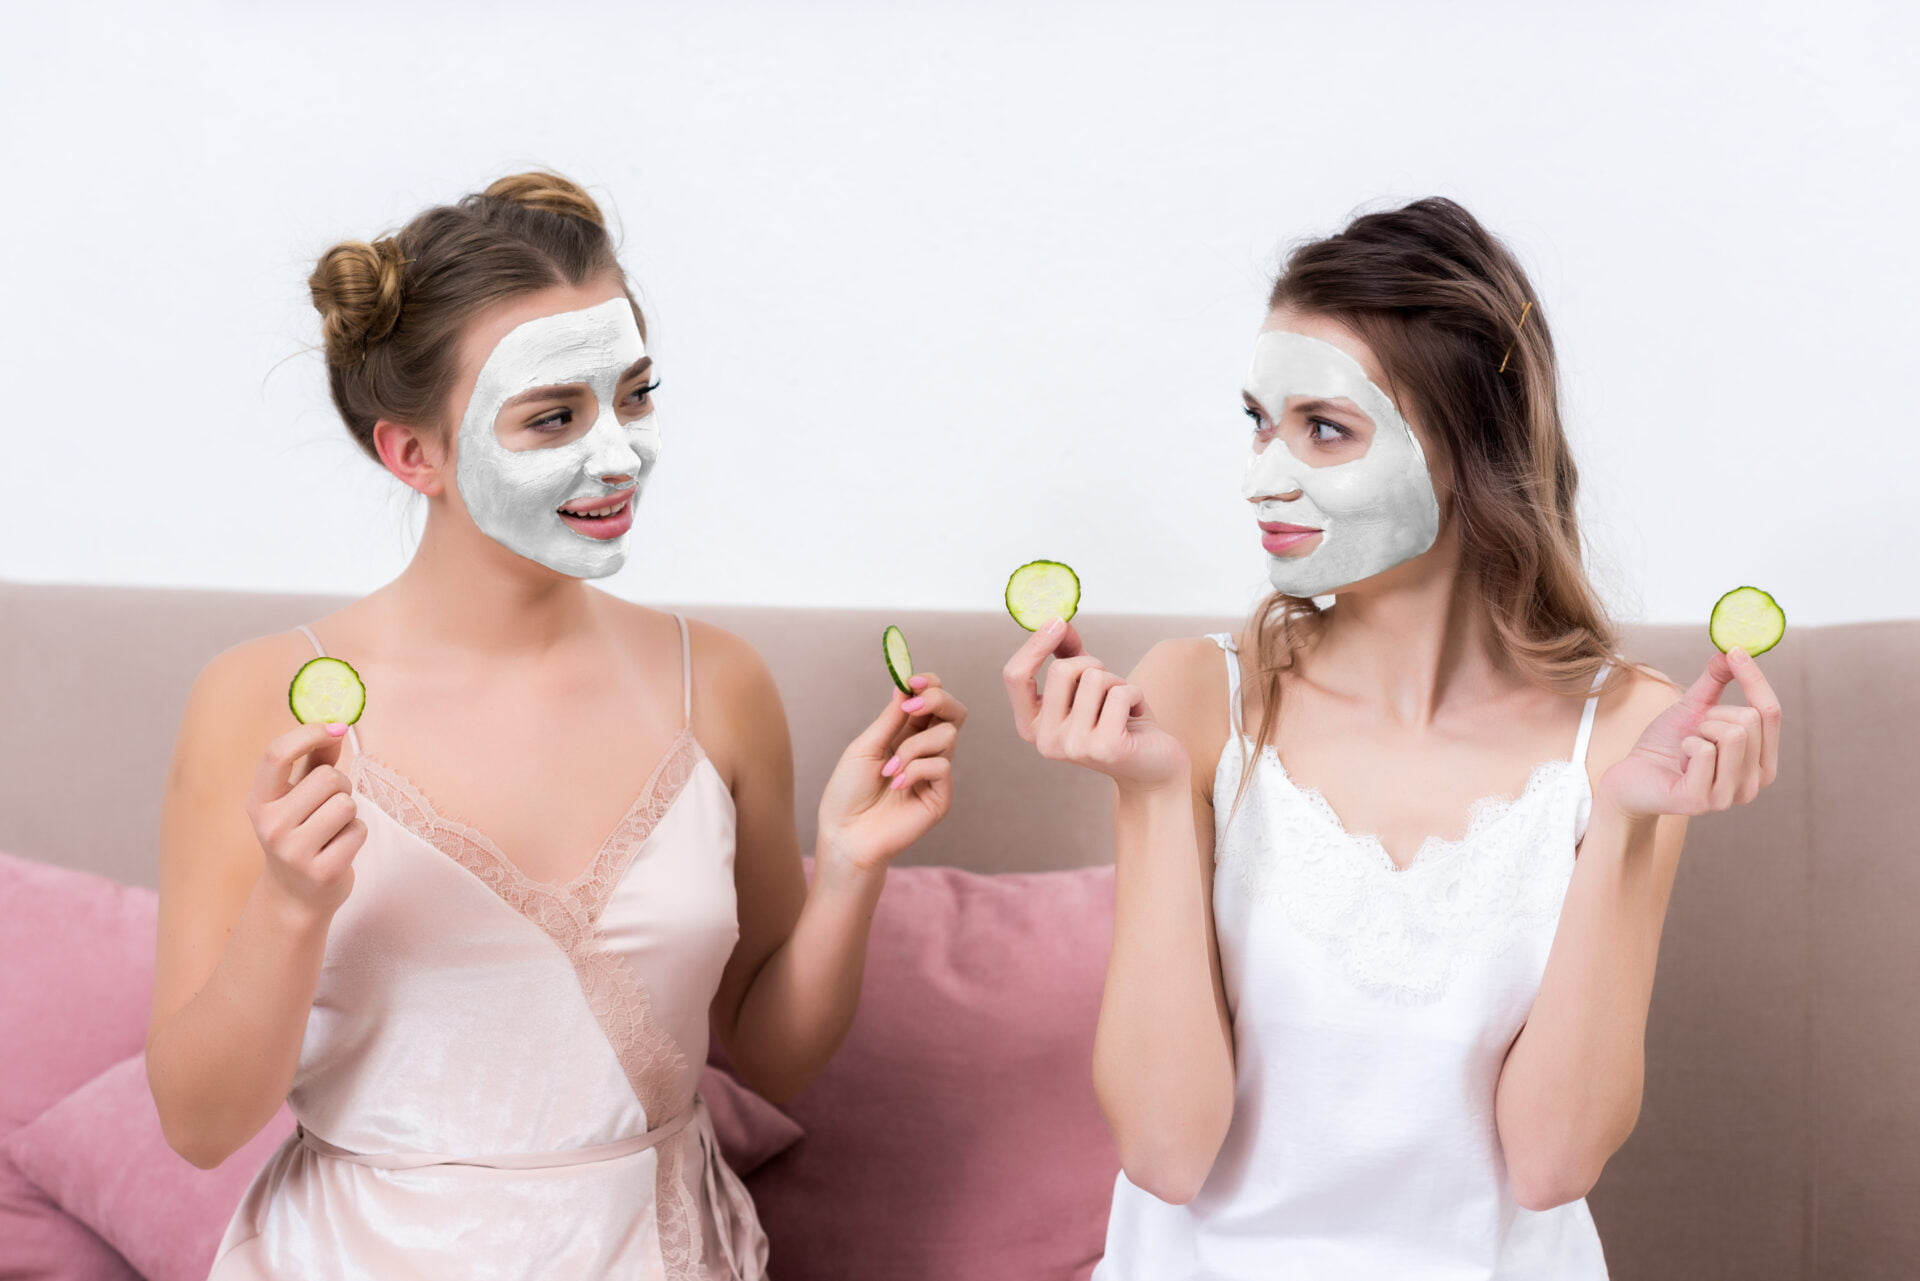 Women sitting together with pull off face masks and cucumbers for their eyes